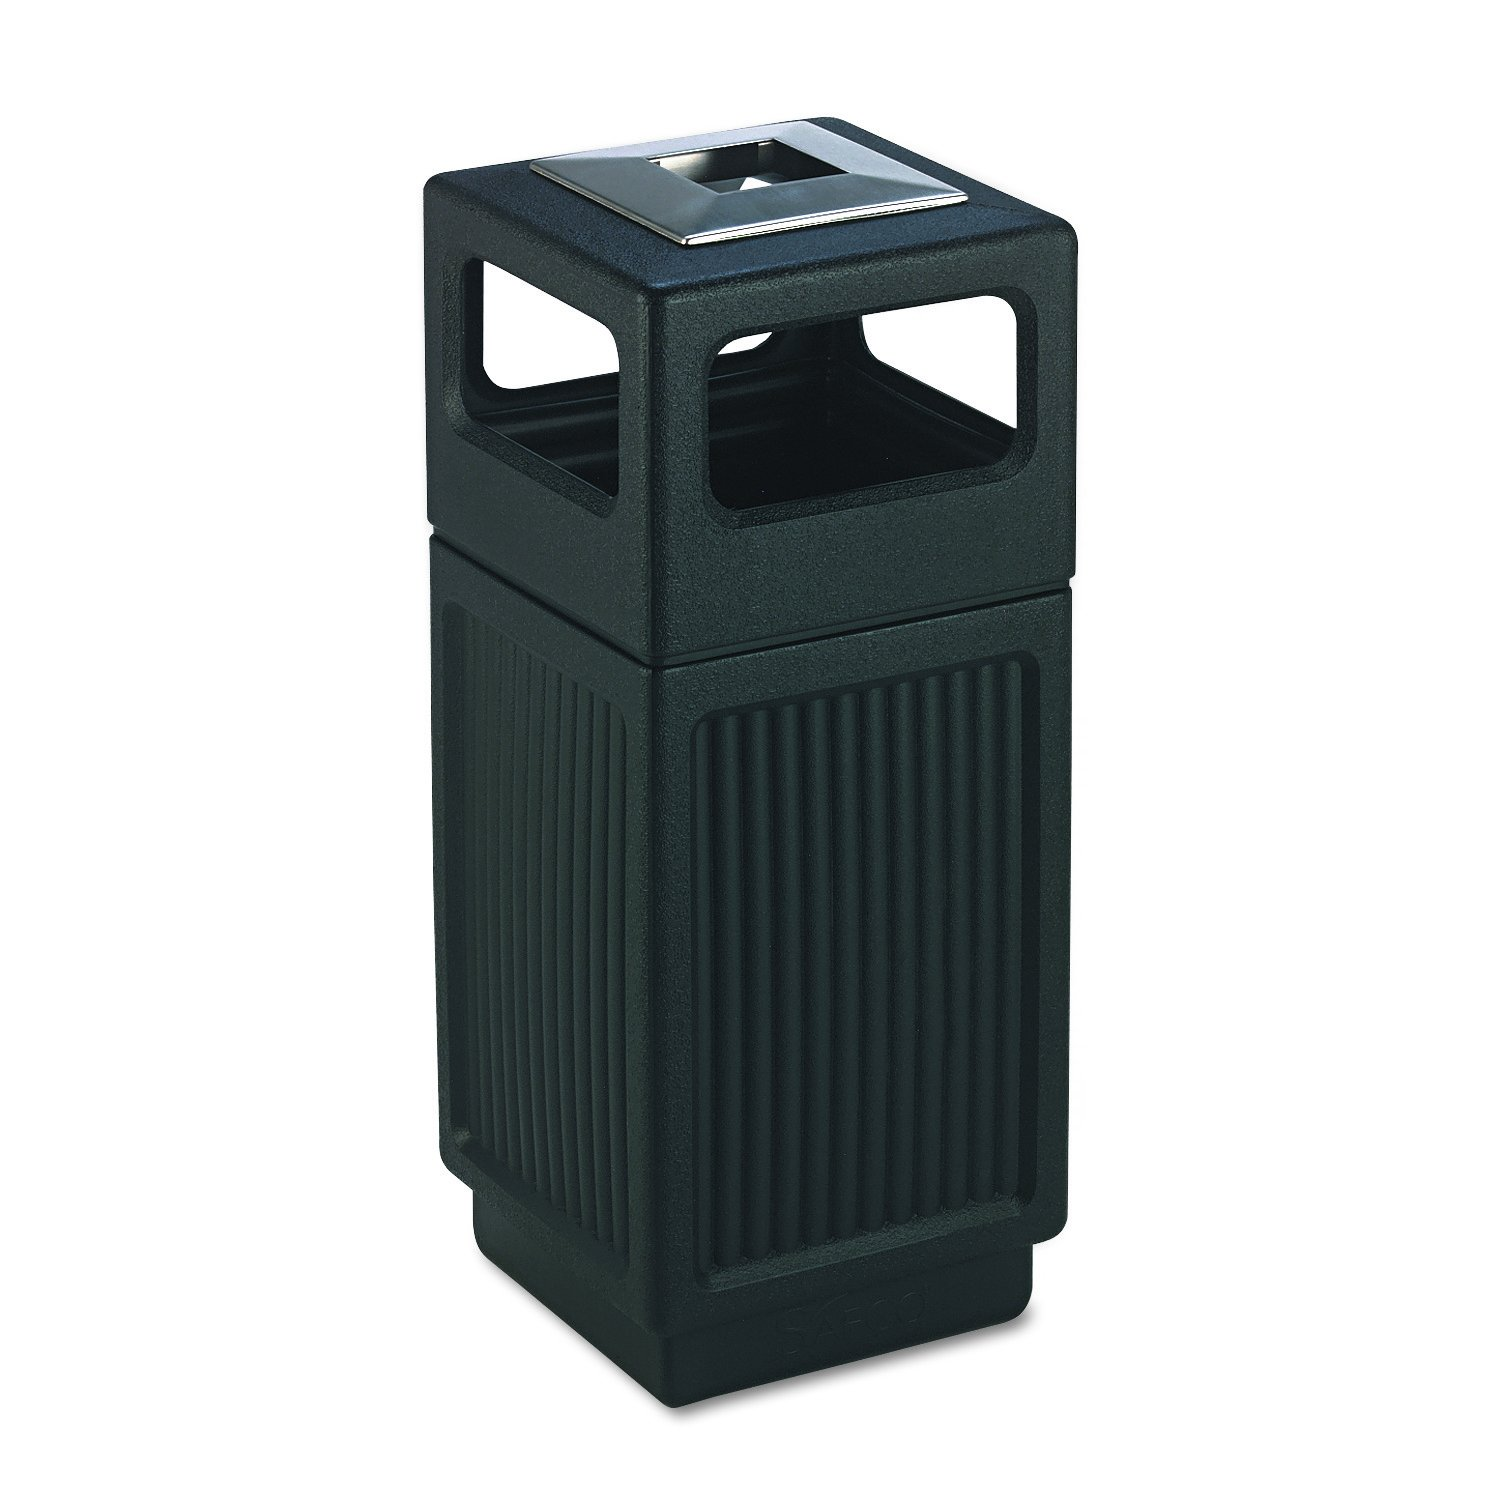 commercial trash can restaurant tray receptacle large garbage waste bin ash urn 691196311126 ebay. Black Bedroom Furniture Sets. Home Design Ideas